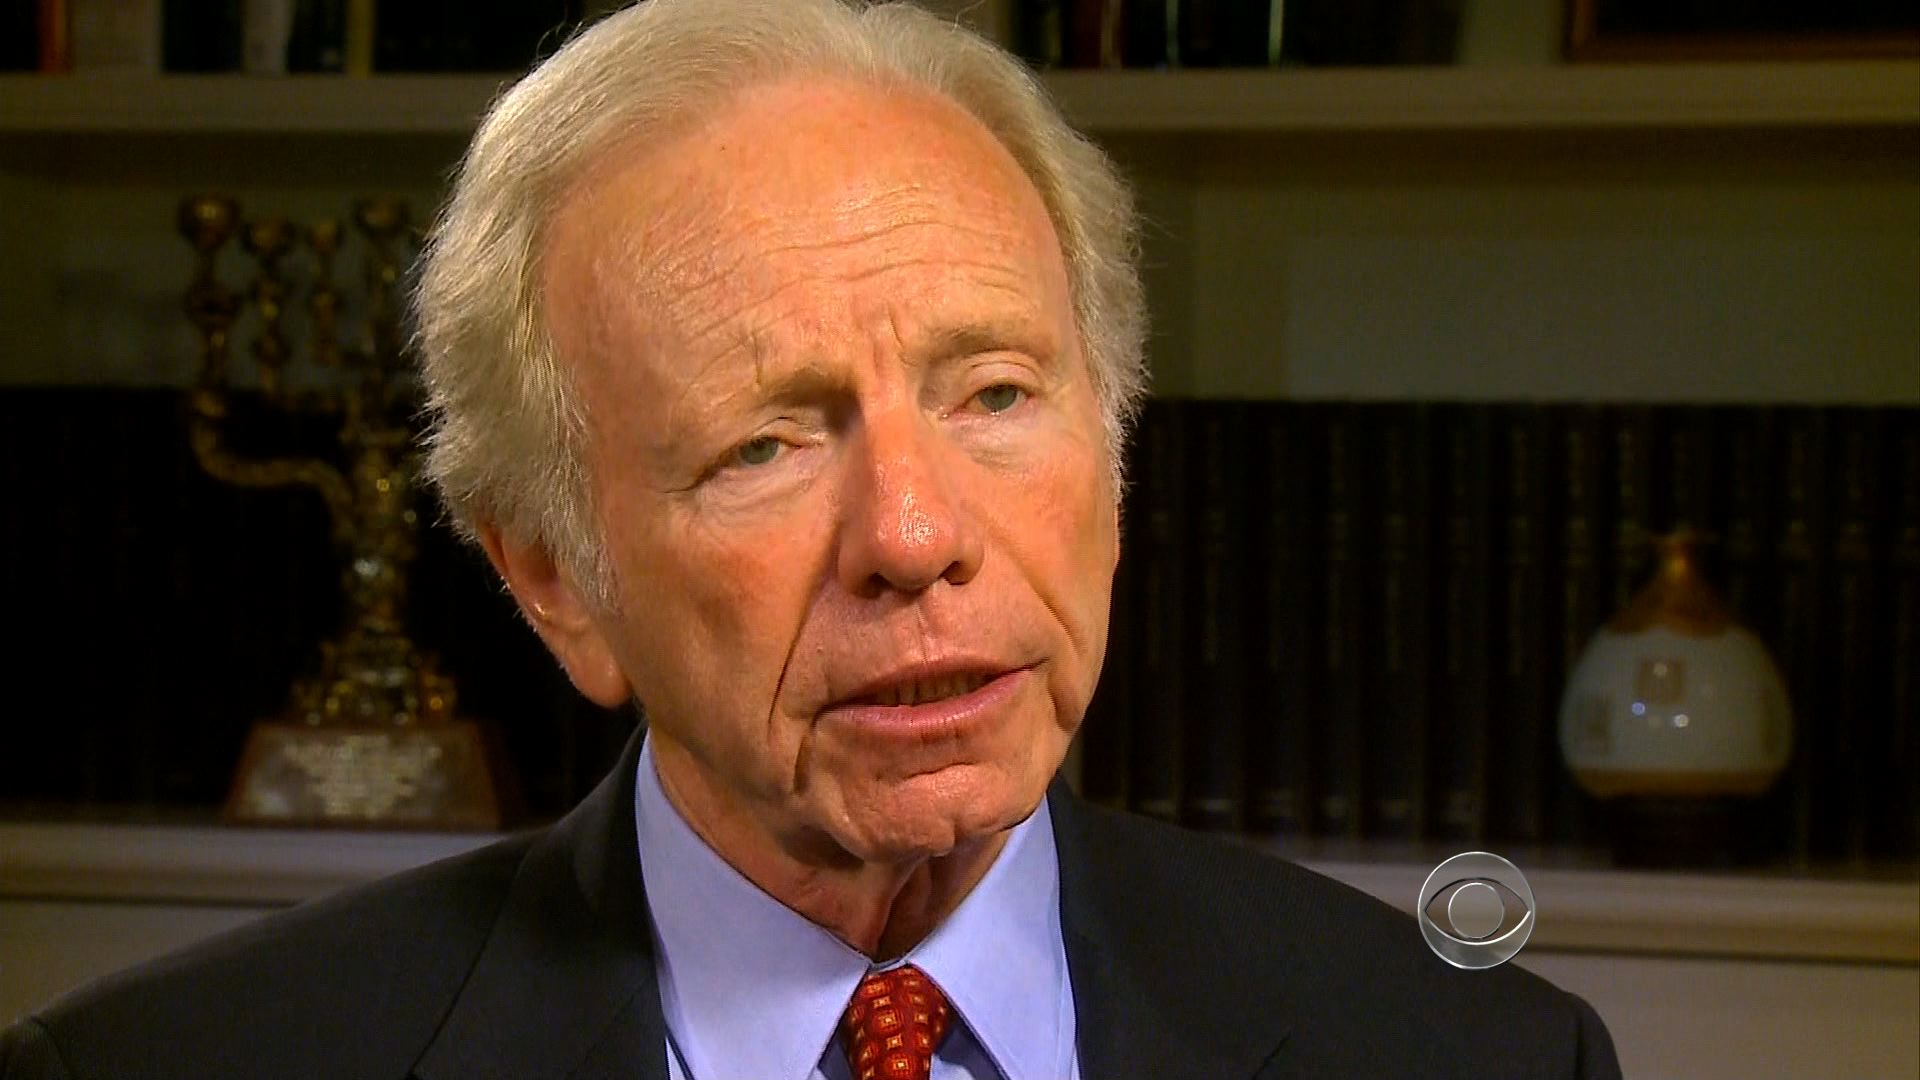 Sen. Joe Lieberman is hoping for better cybersecurity luck this time around.